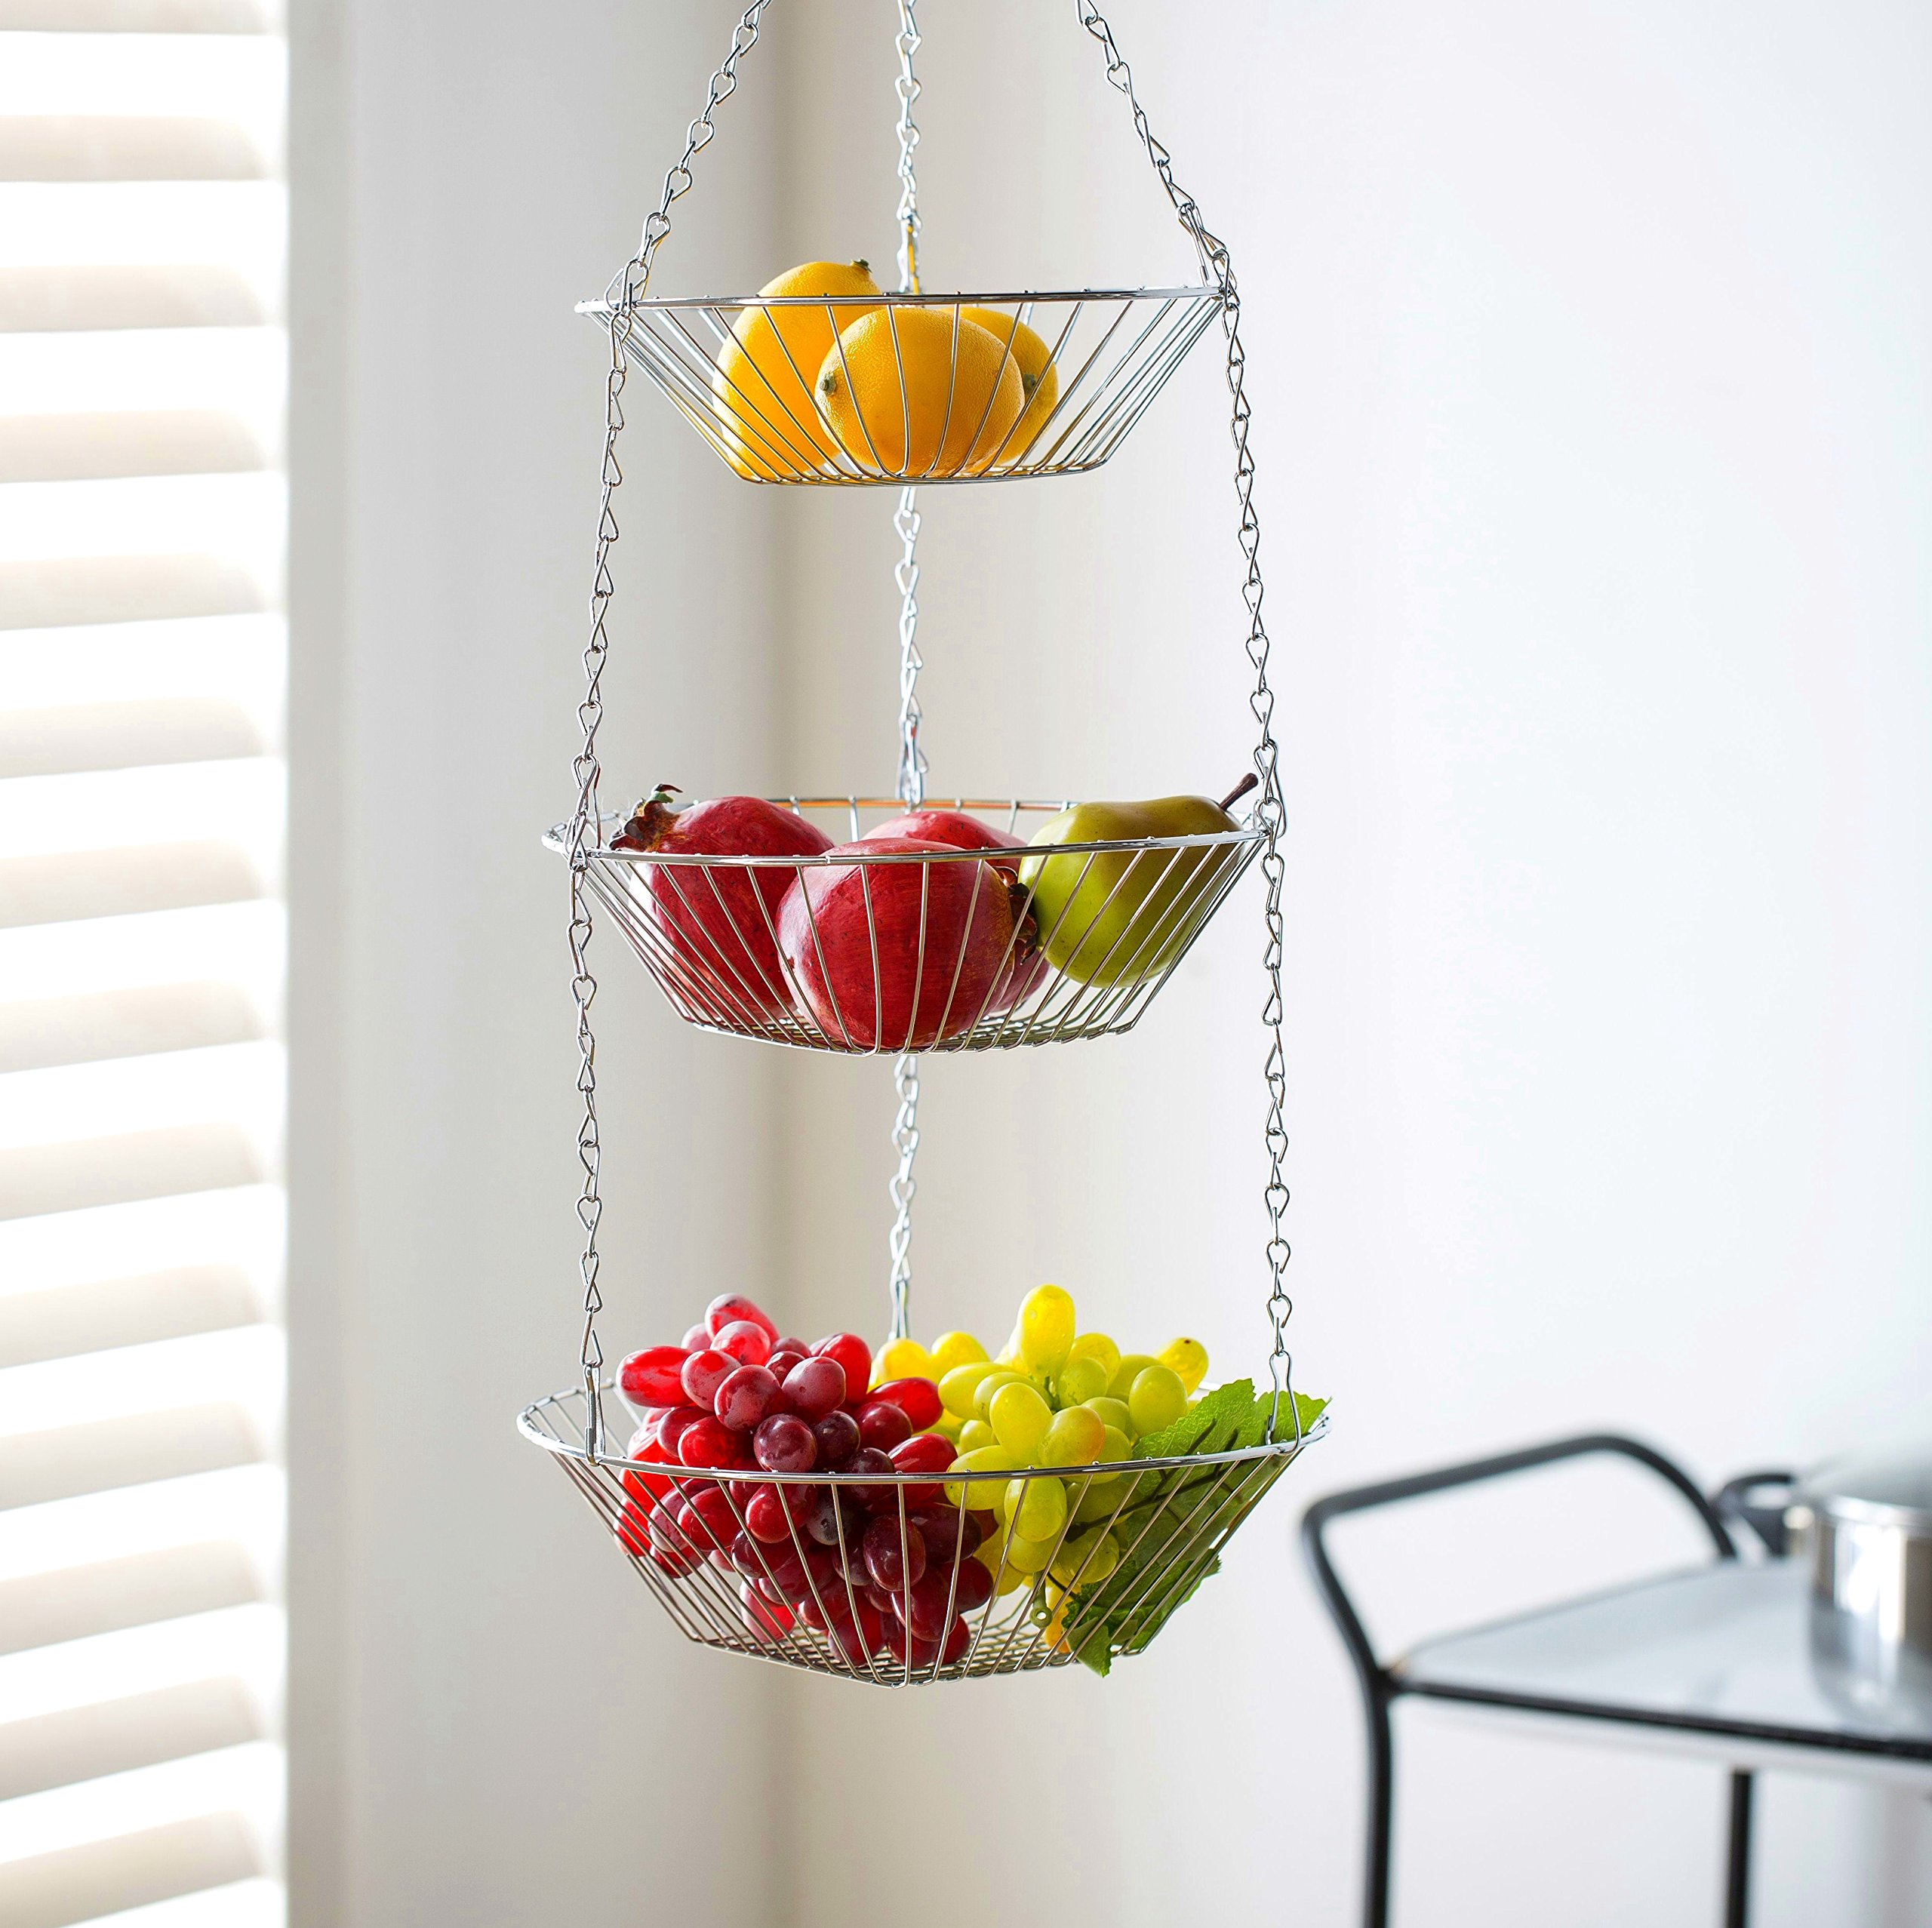 Deppon Wire Hanging Fruit Basket 3-Tiered Detachable Heavy Duty Kep for Home, Kitchen